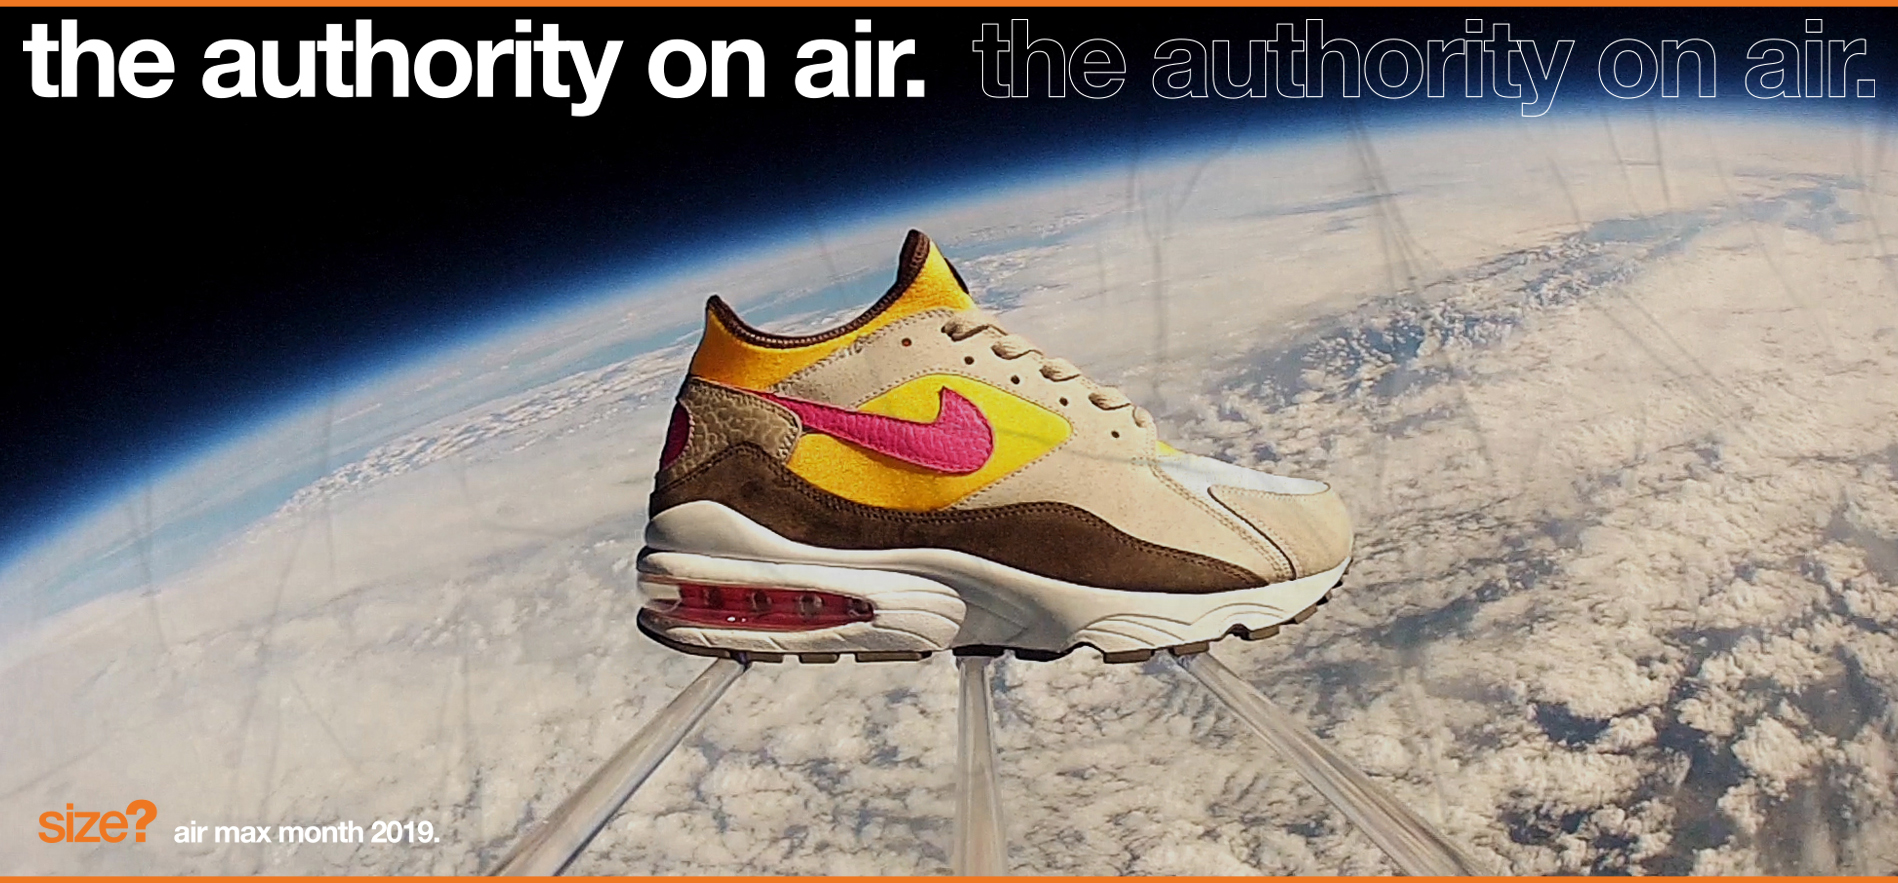 the authority on air: Air Max 93 'Maximum Air'